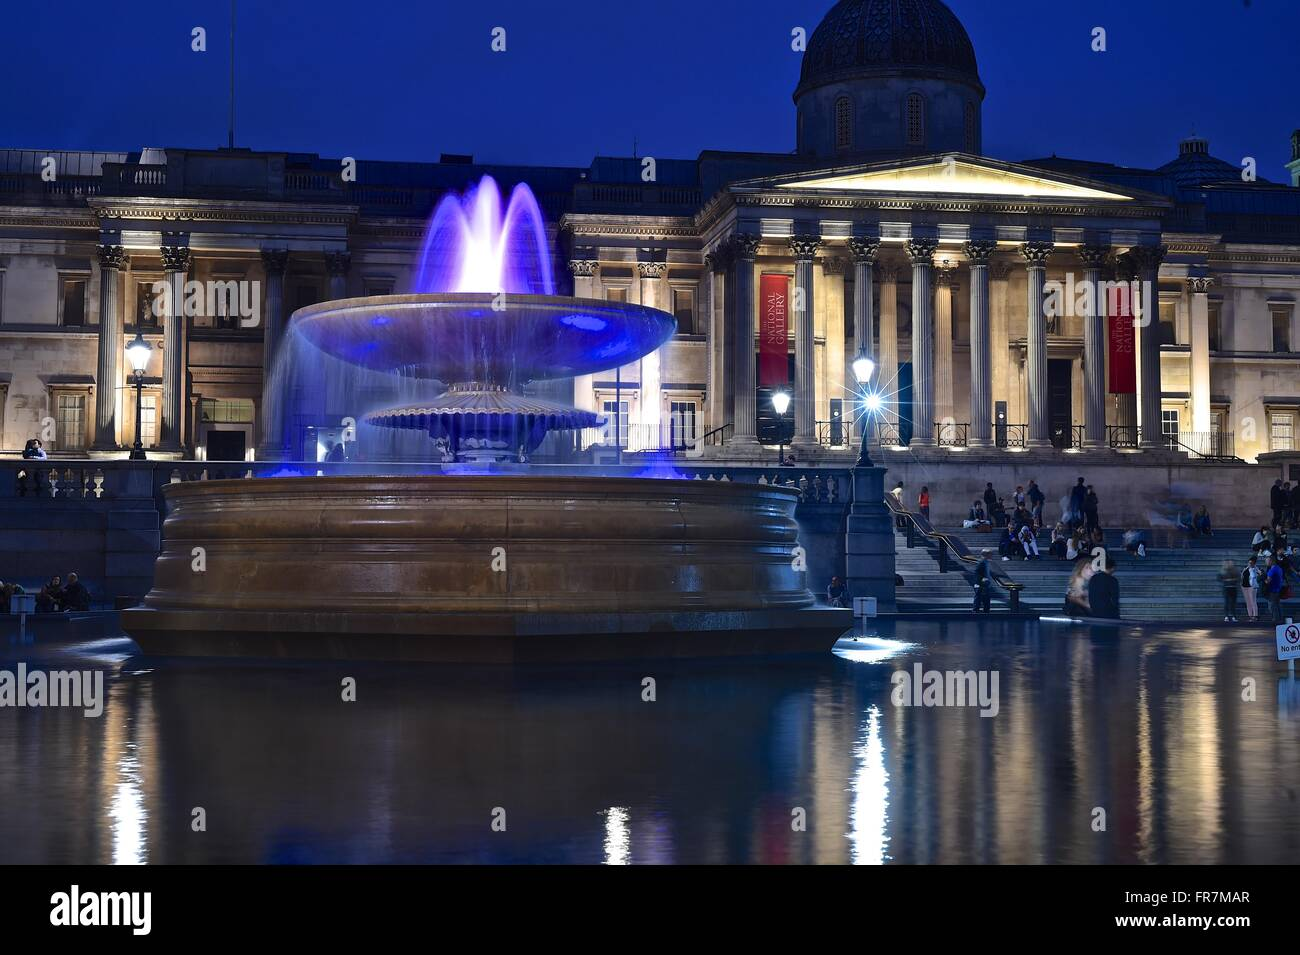 Fountains outside national gallery in Trafalgar Square, London England - Stock Image